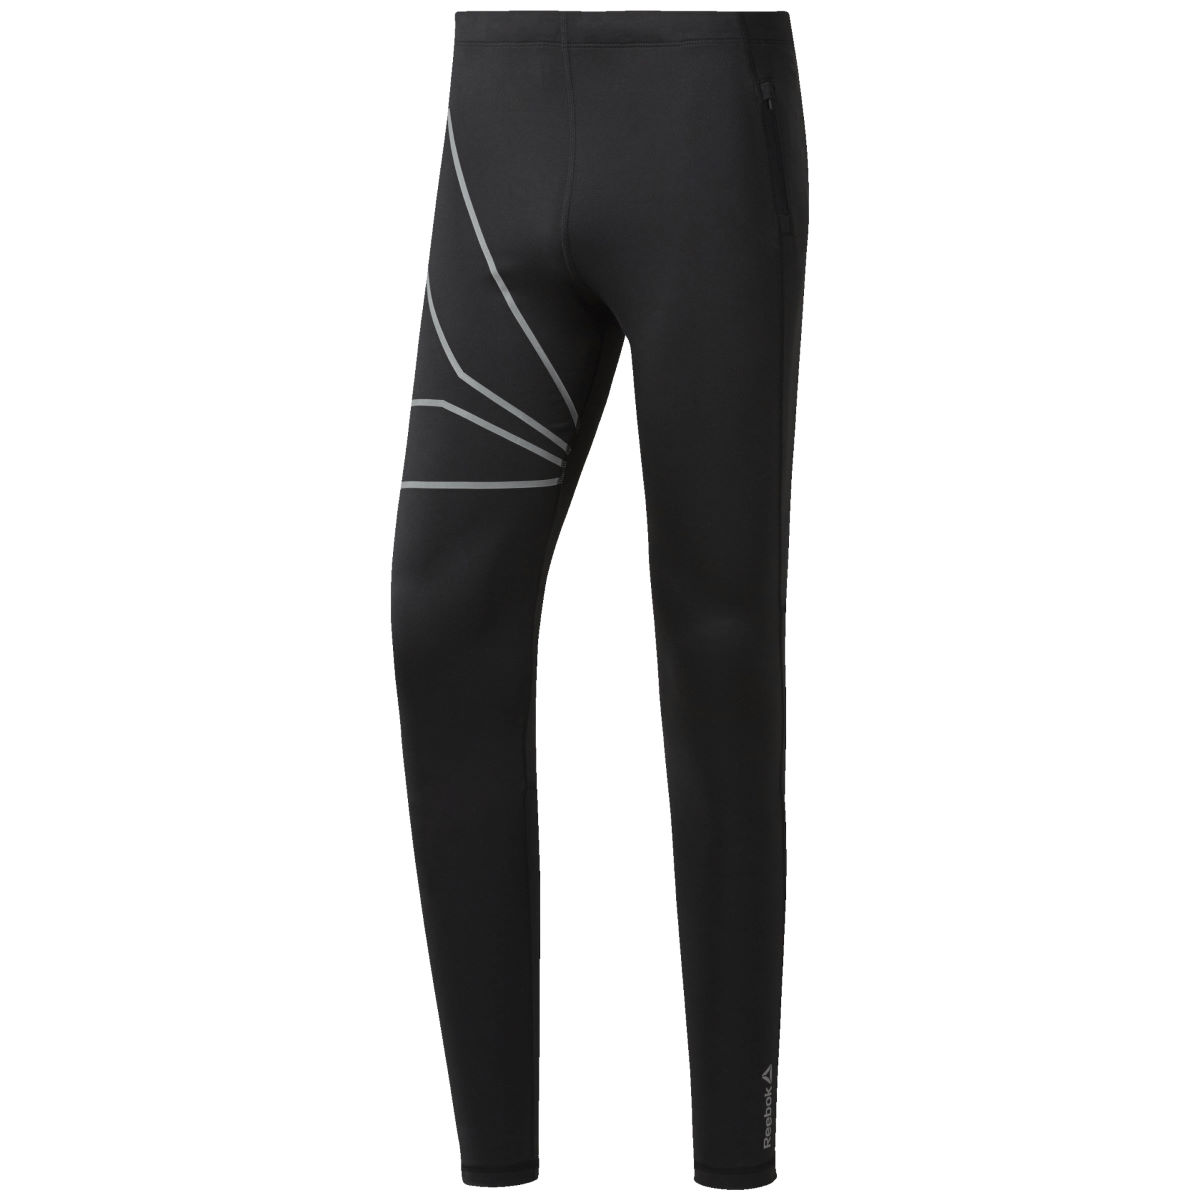 Reebok Reebok One Series Tight   Tights